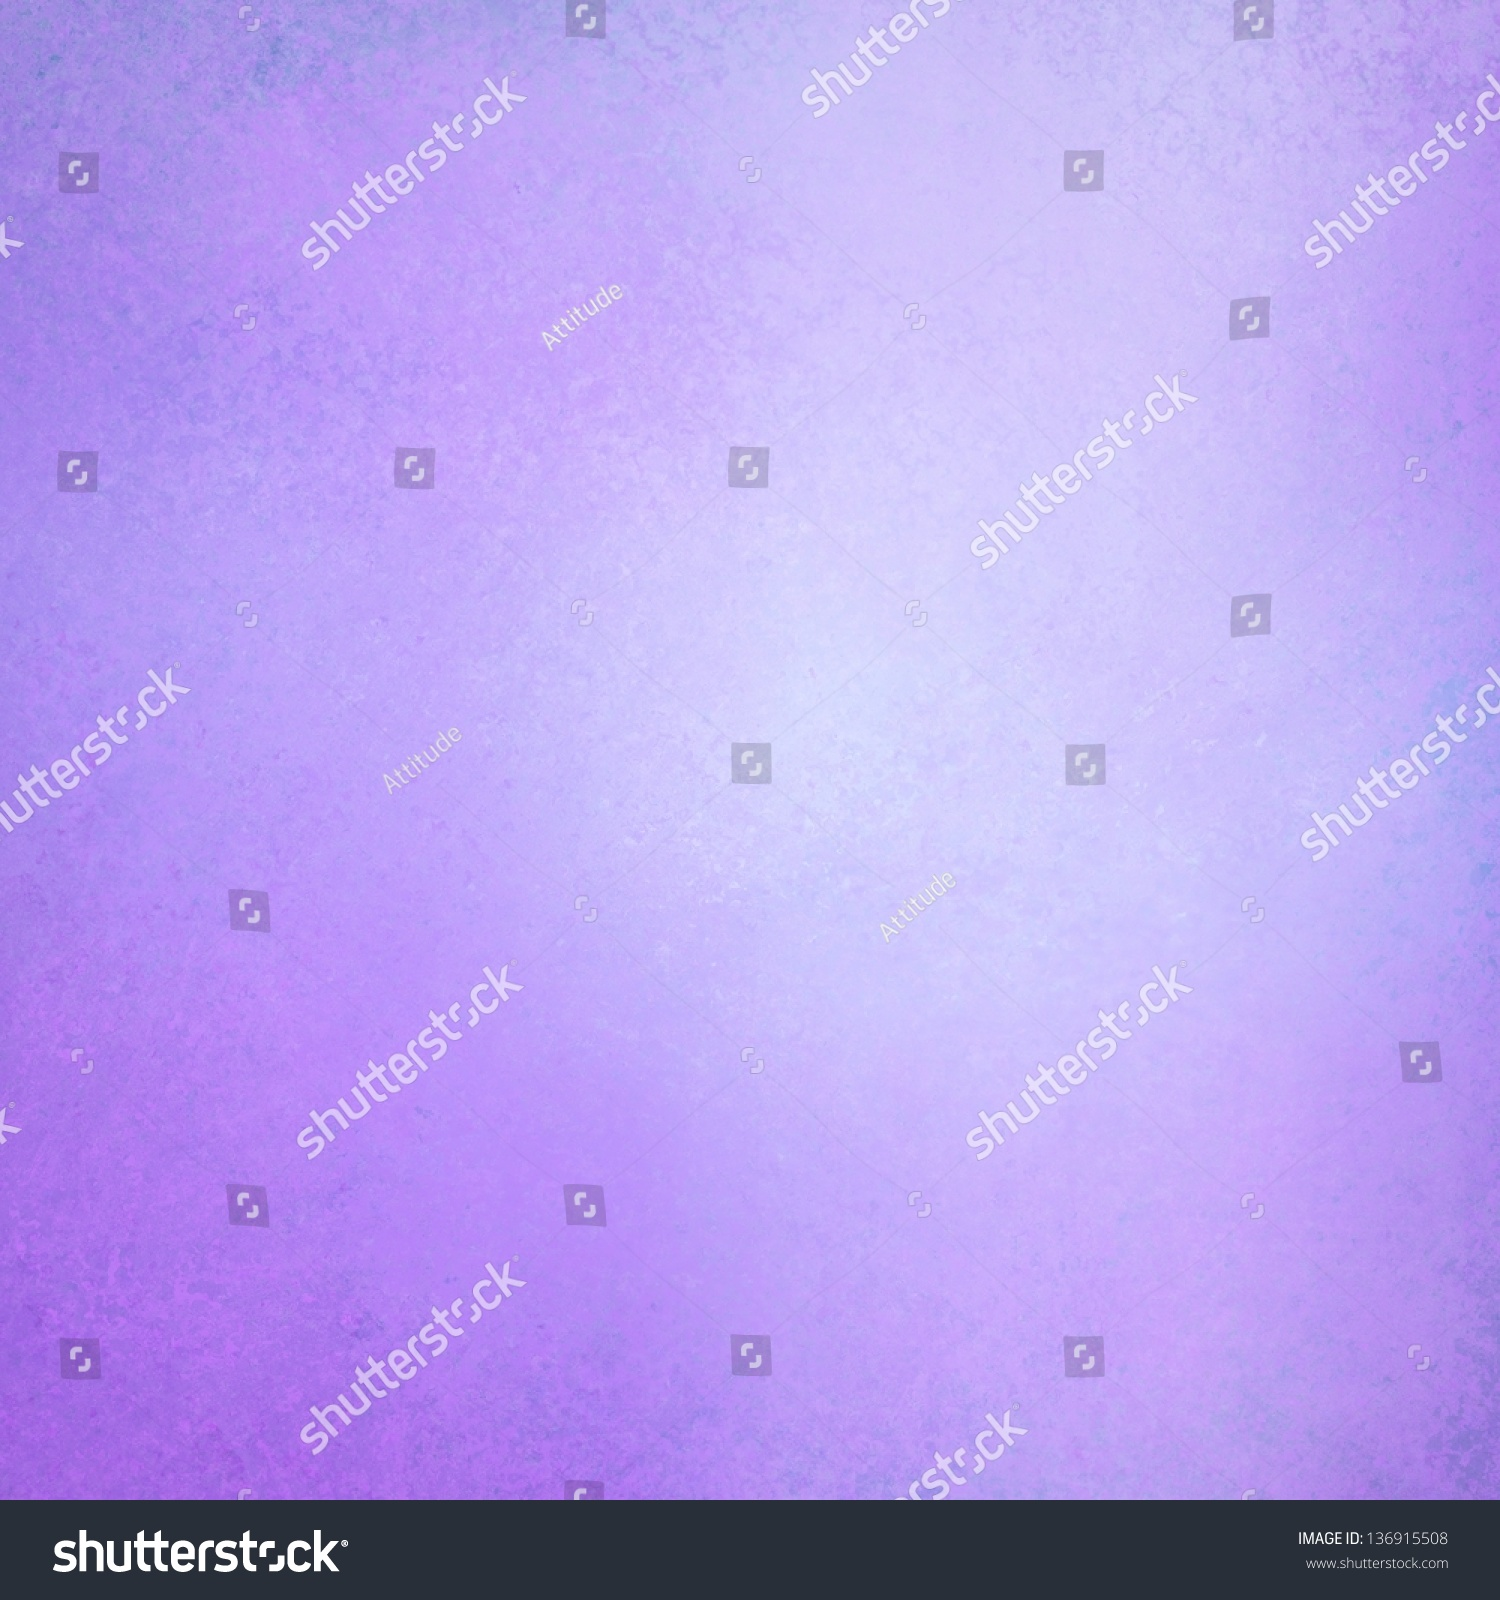 Shade Of Purple abstract purple background lavender lilac color stock illustration